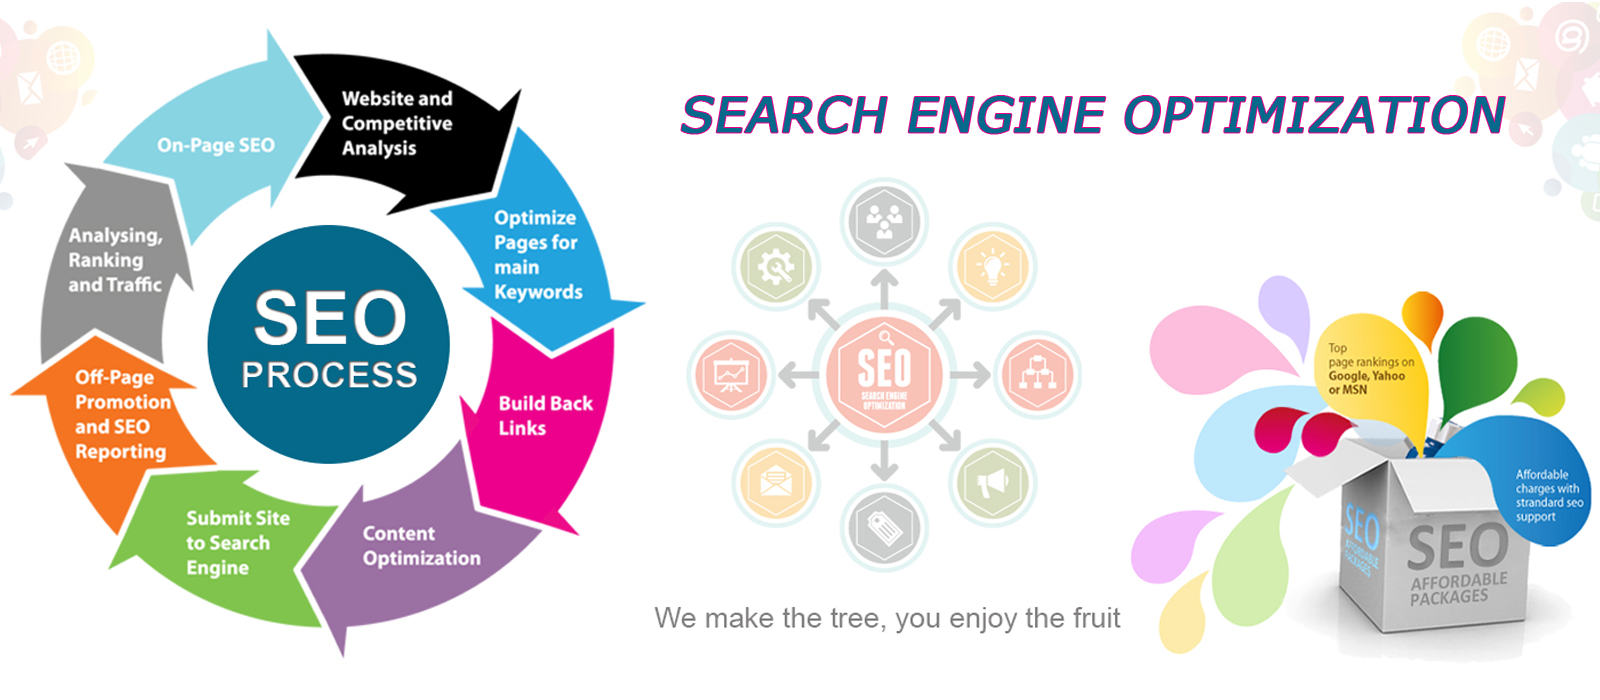 Best SEO Company in India: Affordable SEO Services for Small